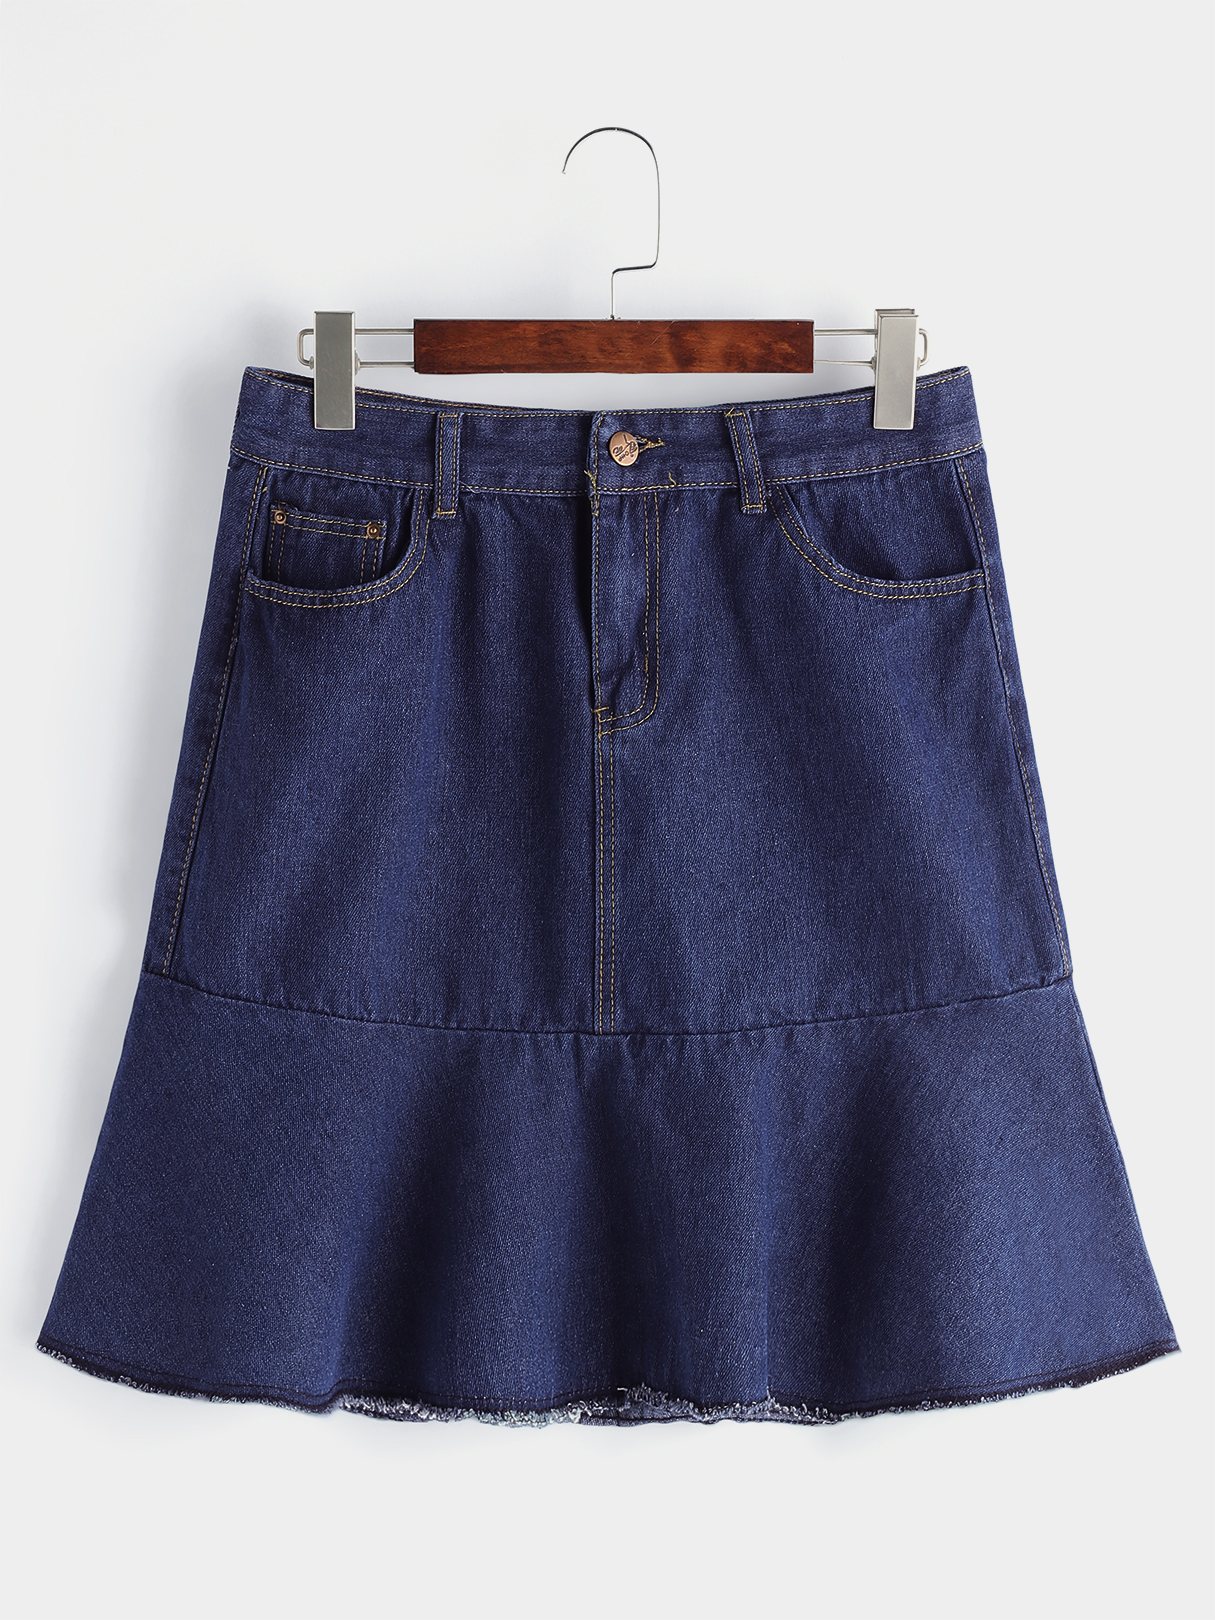 Navy Flounced Hem Denim Mini Skirt монитор benq gl2450hm